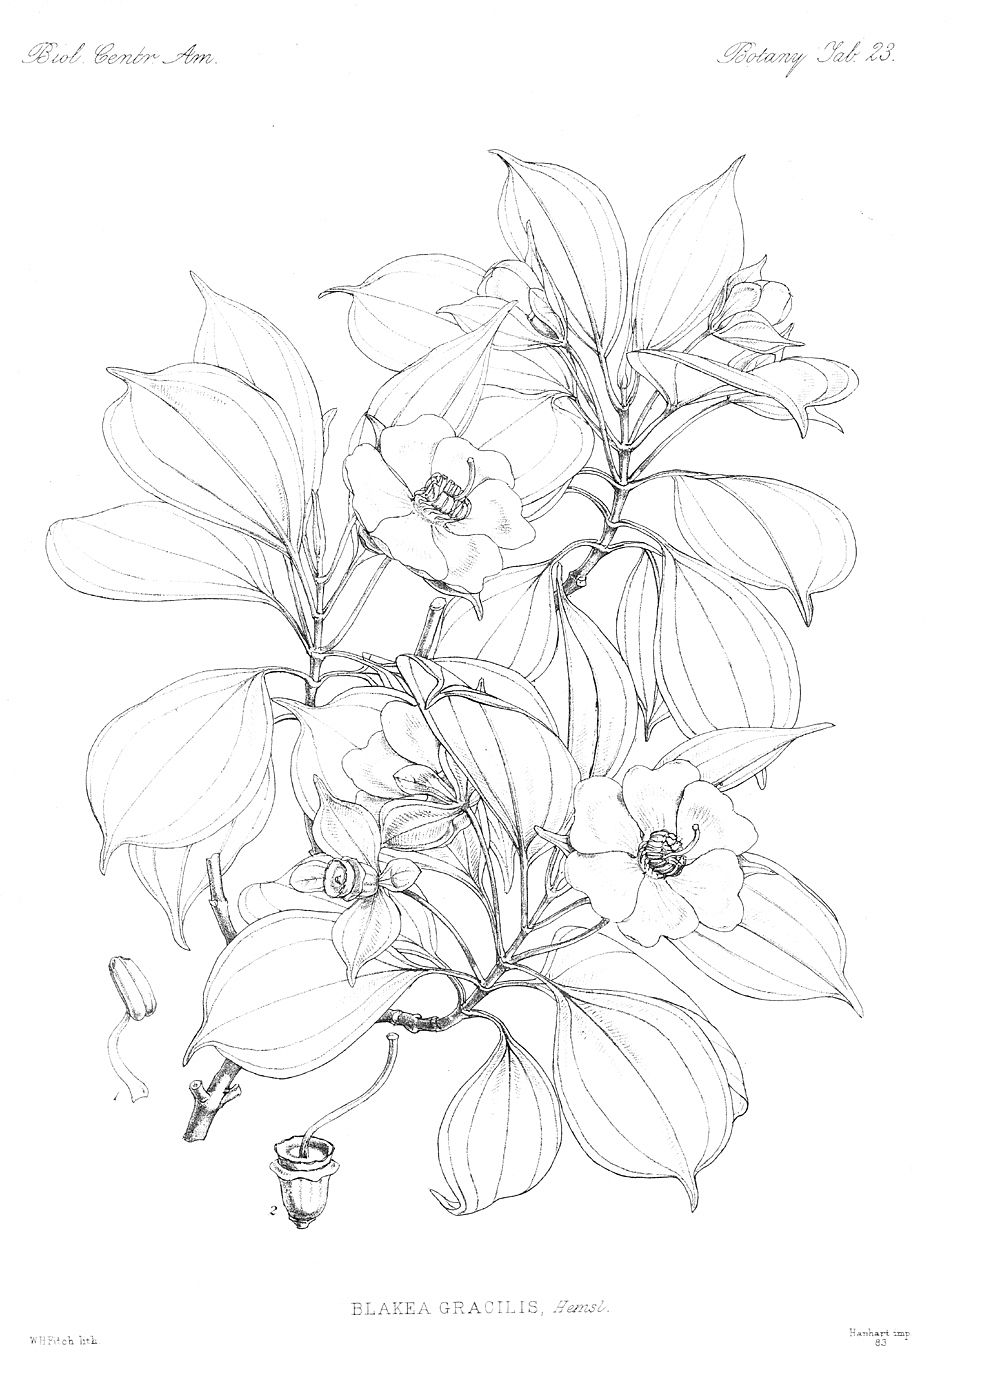 The botany coloring book by paul young - Botany Coloring Pages 19